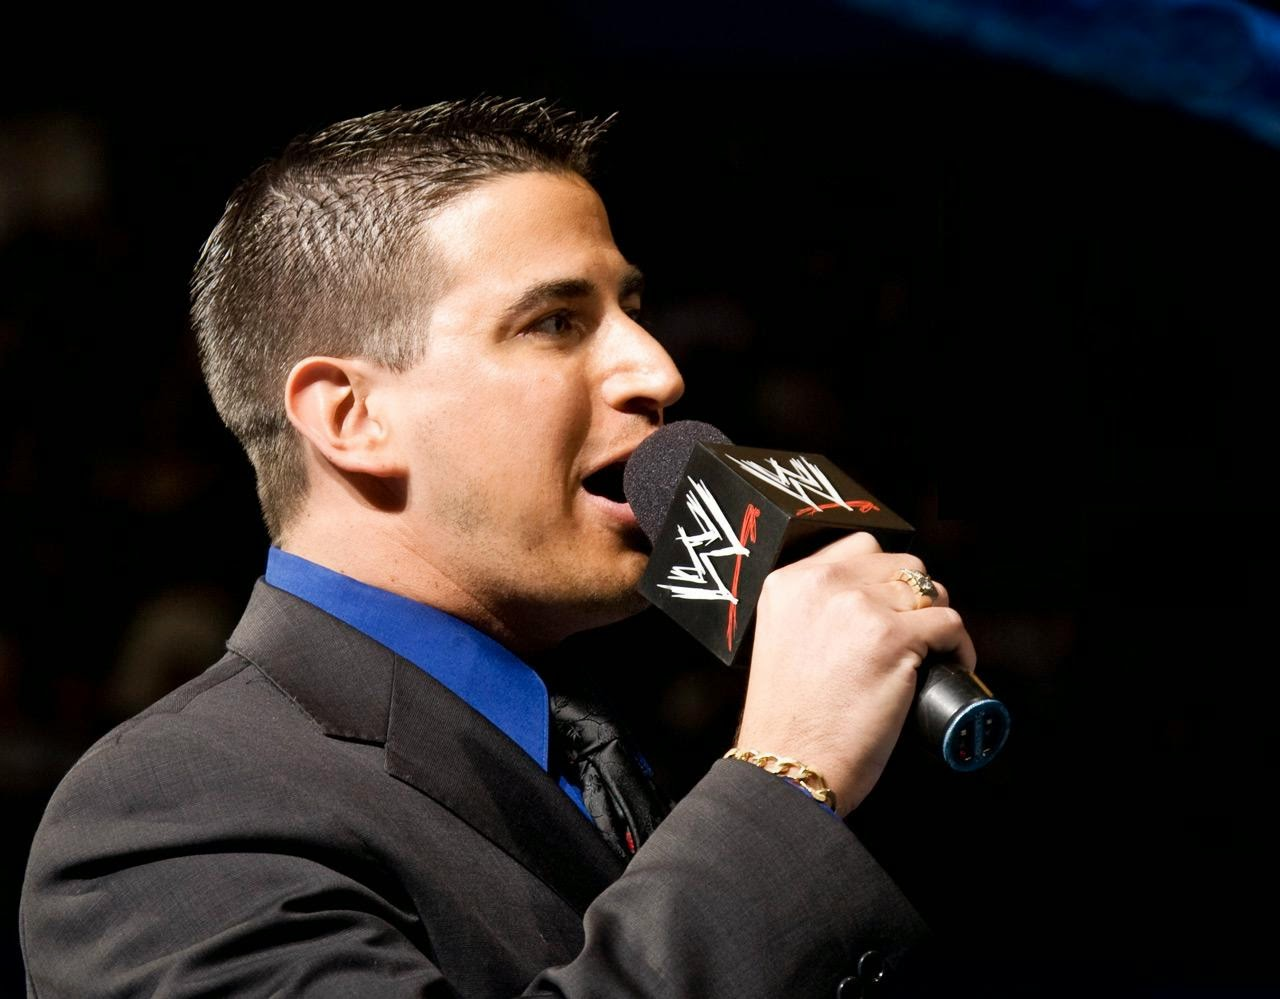 Justin Roberts Hd Wallpapers Free Download